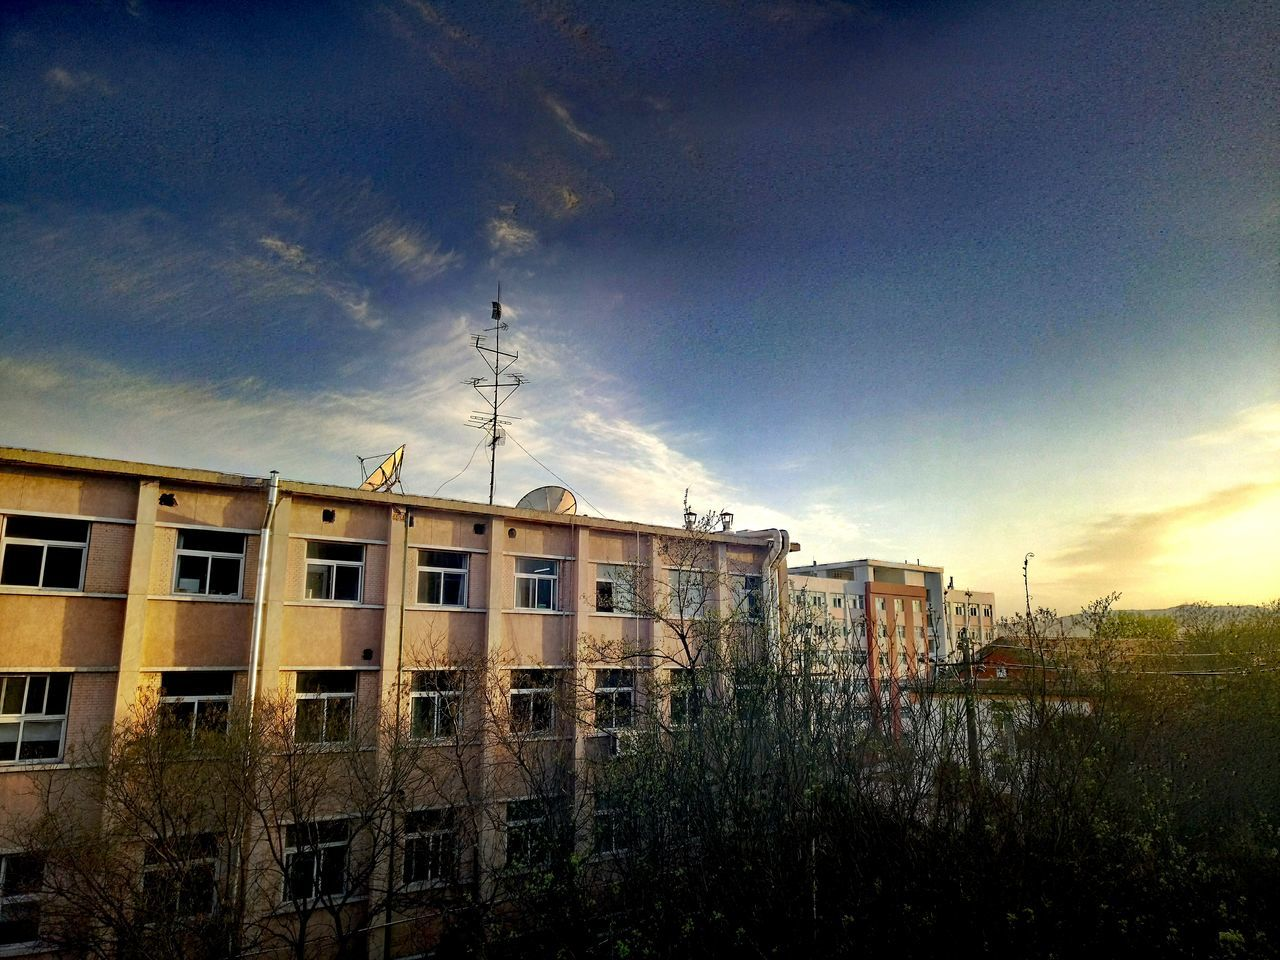 architecture, sky, cloud - sky, building exterior, built structure, no people, outdoors, day, nature, plant, sunset, tree